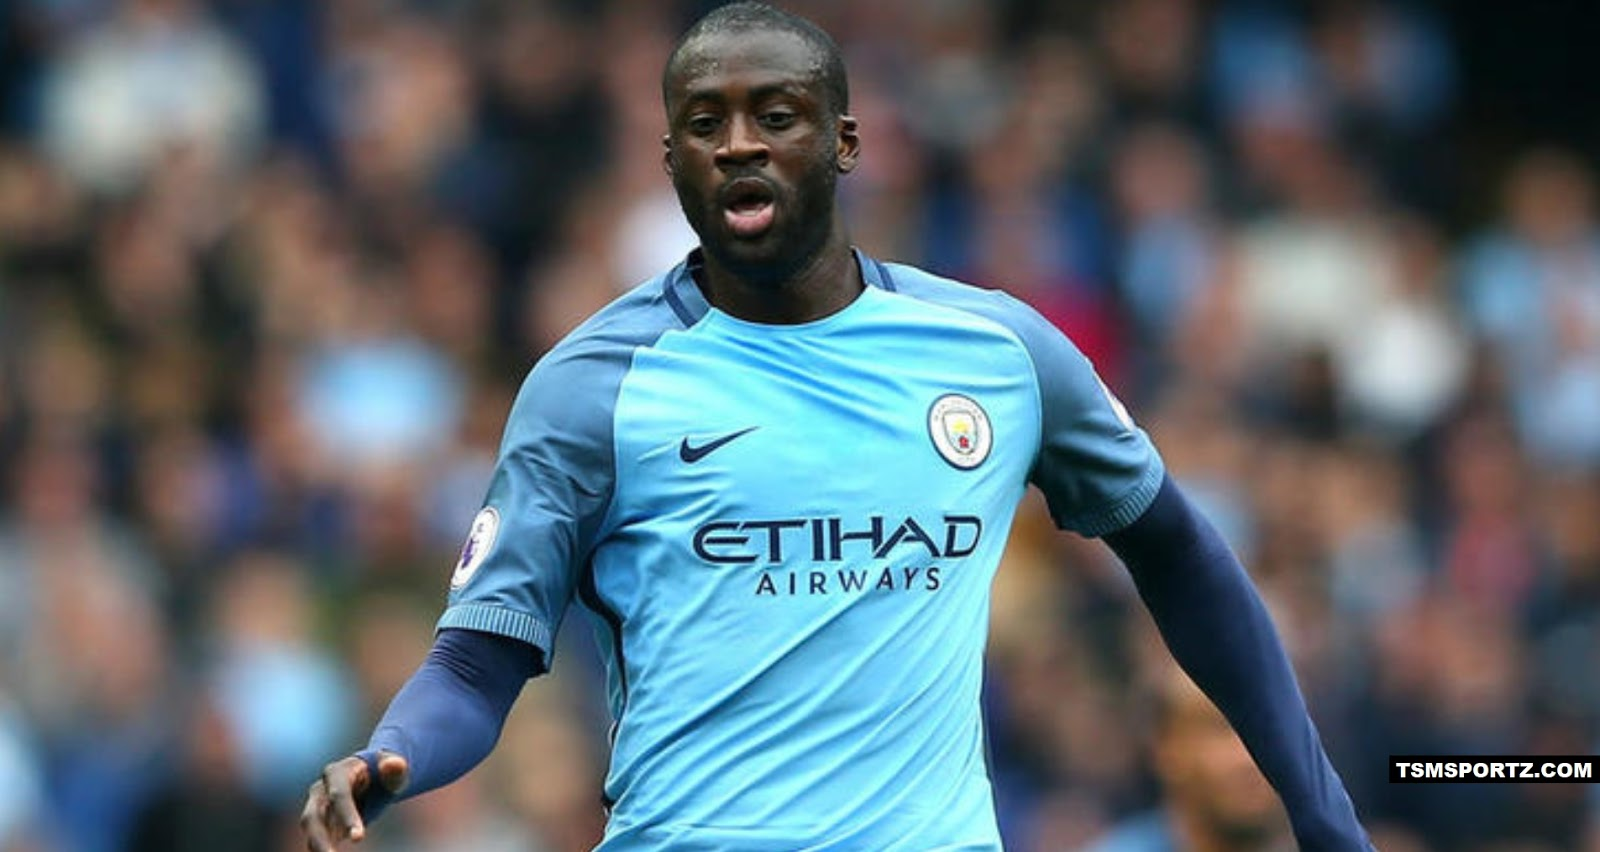 Yaya Toure richest African Muslim footballer in world